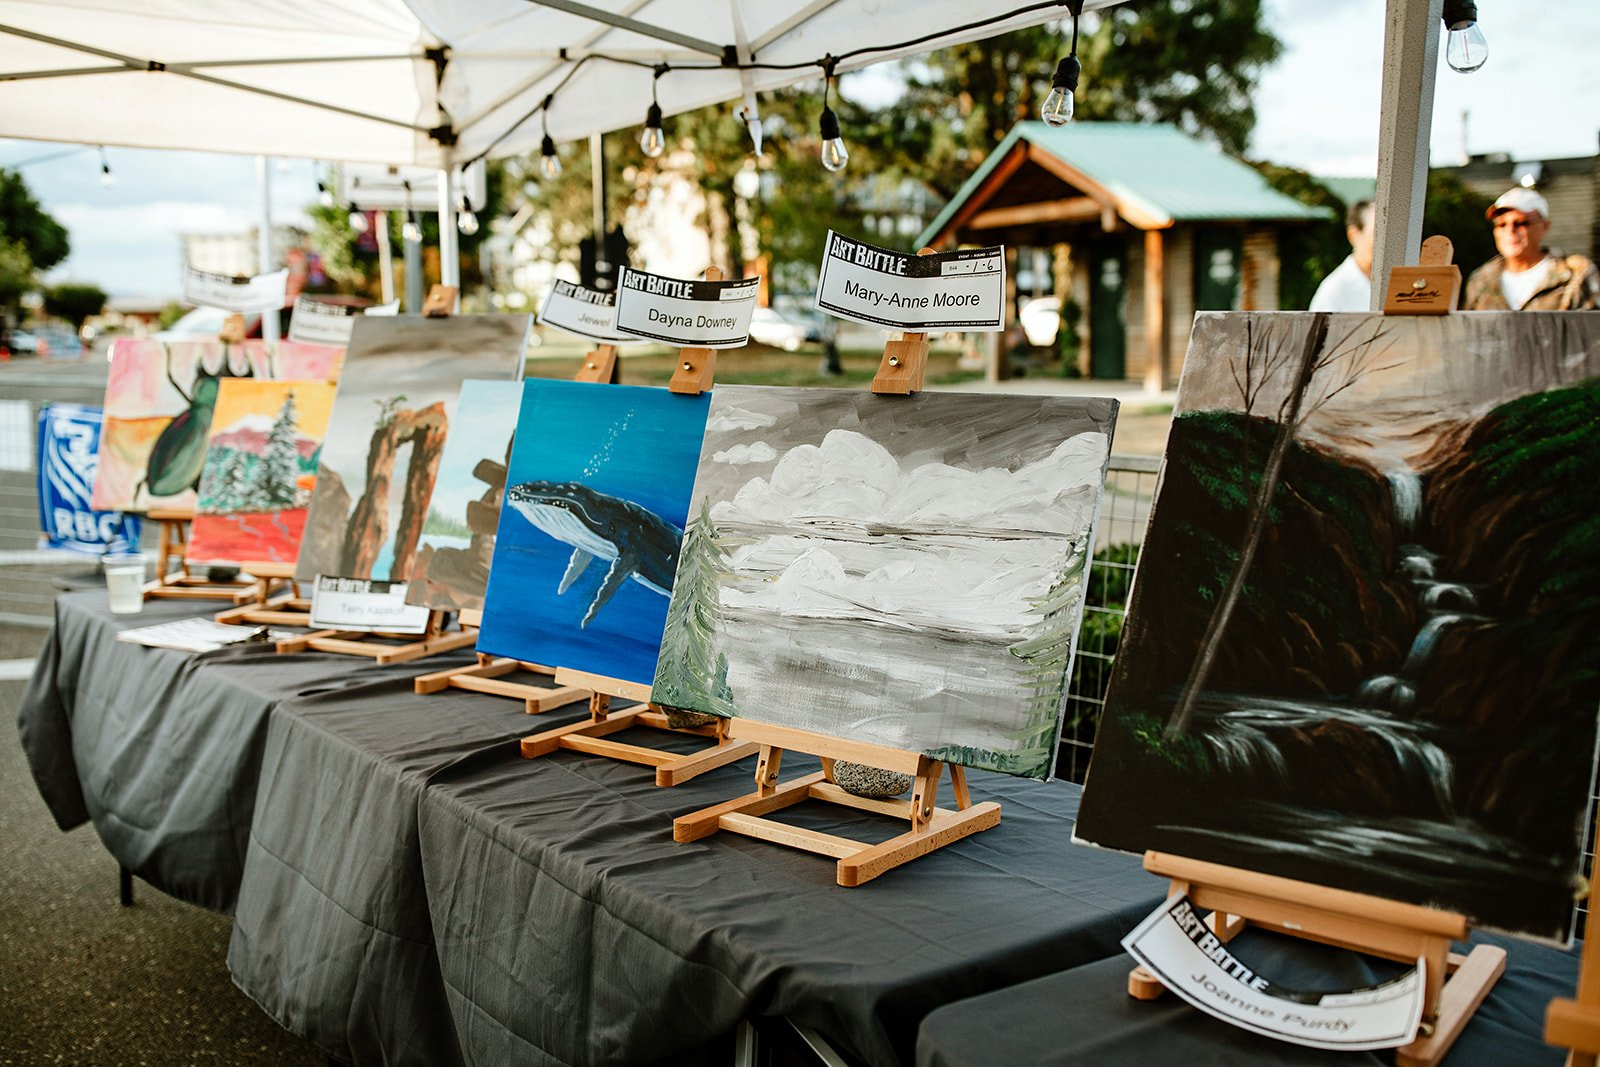 Photo by Bluetree Photography taken at an Art Battle event